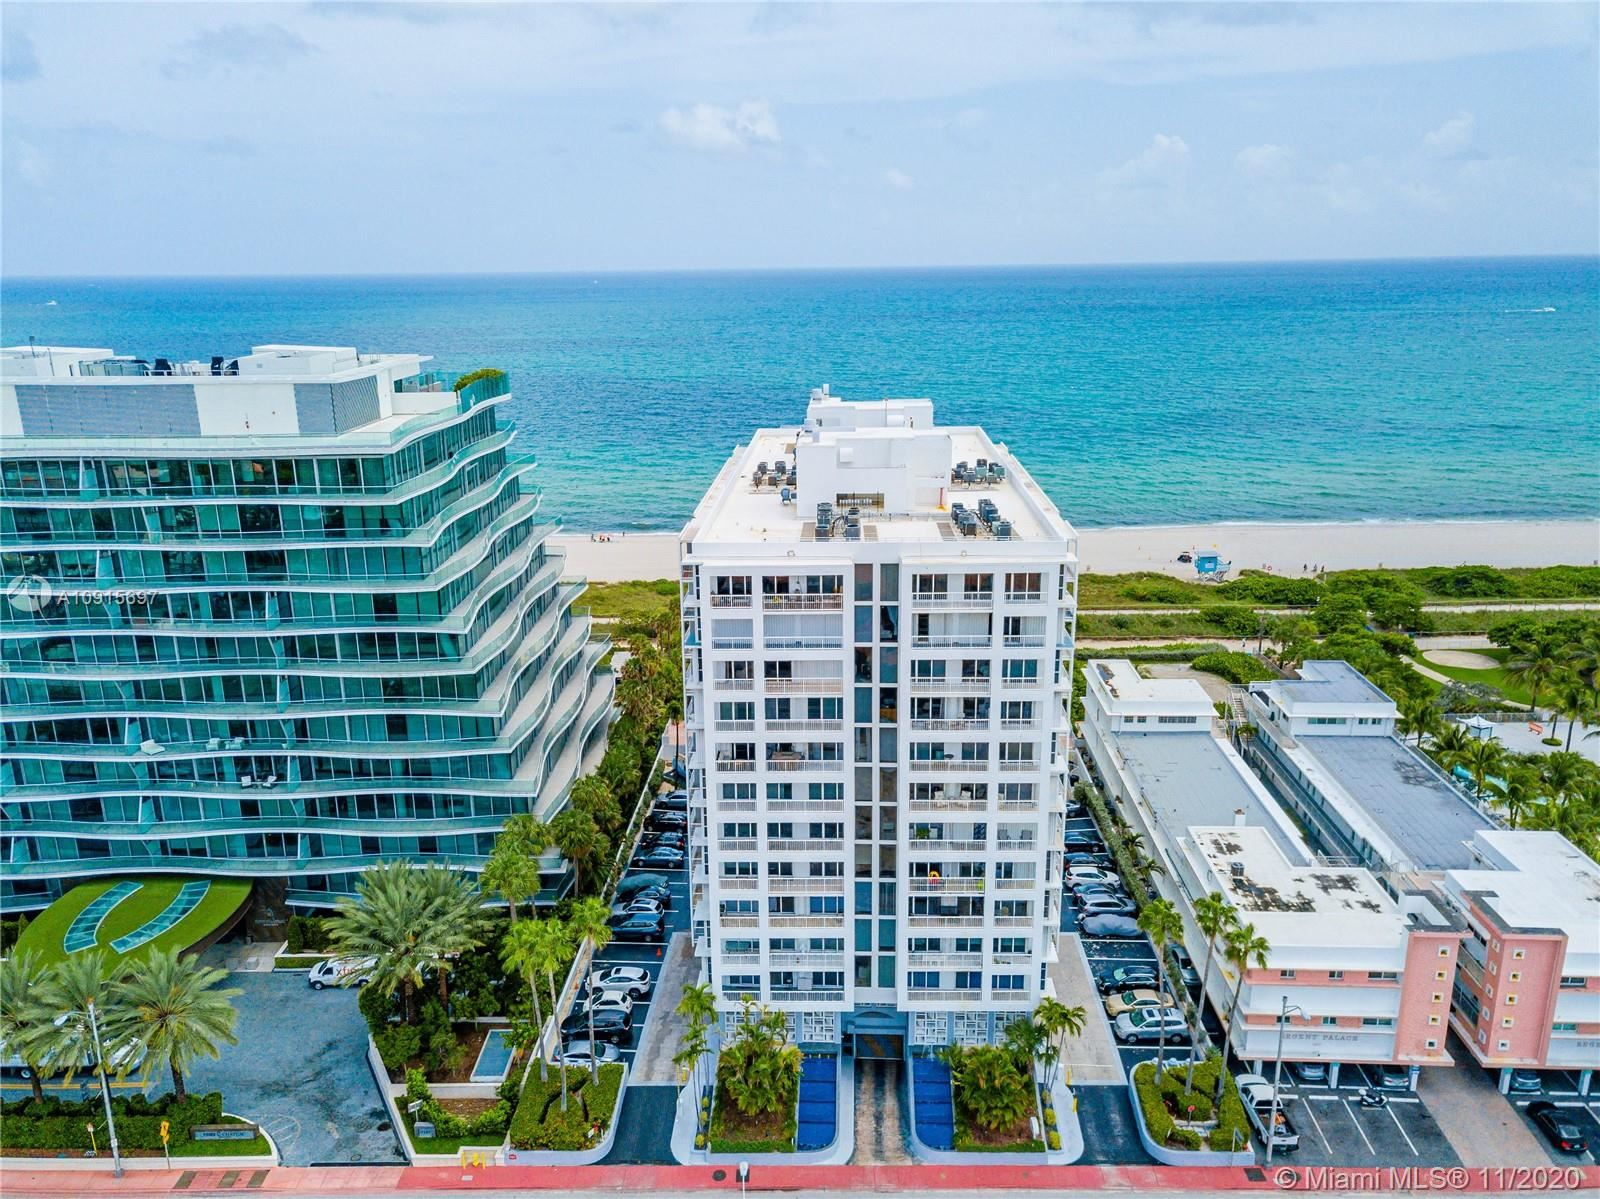 9341 Collins Ave #403, Surfside, FL 33154 - #: A10915697